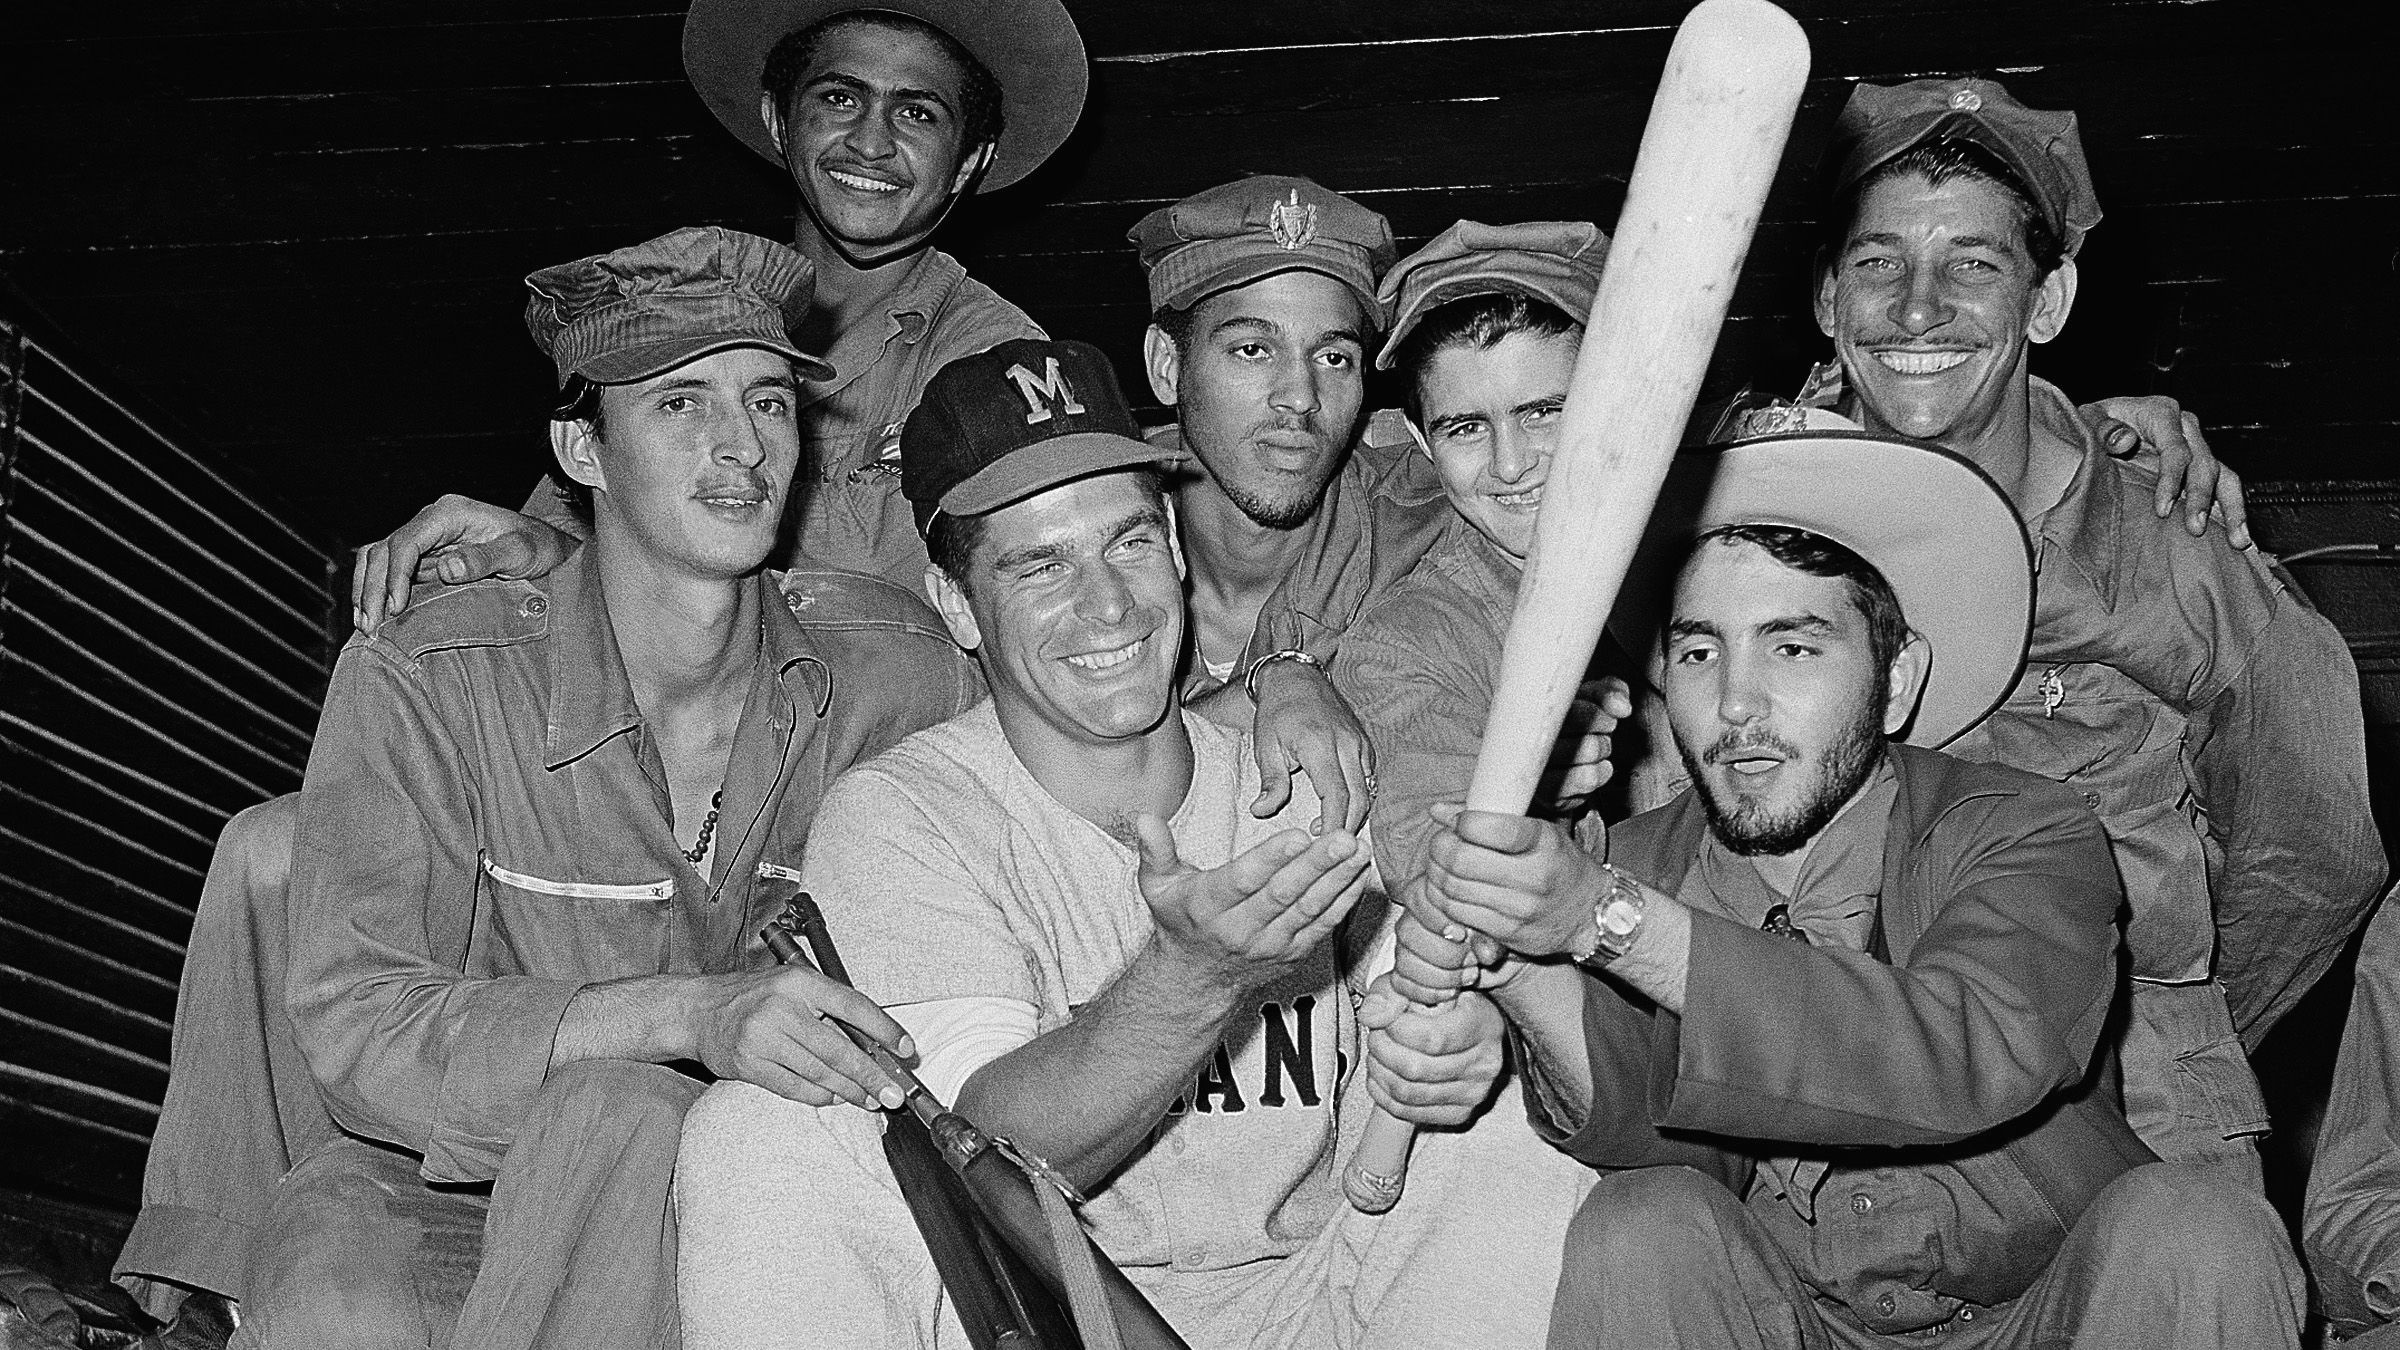 A rebel solider from the Fidel Castro army gets a kick out of trying the bat of Charley Lau, Detroit catcher, playing ball in the Cuban winter league, February 1, 1959. Lau made the boys let him keep their guns so he would be sure and get his favorite stick back.